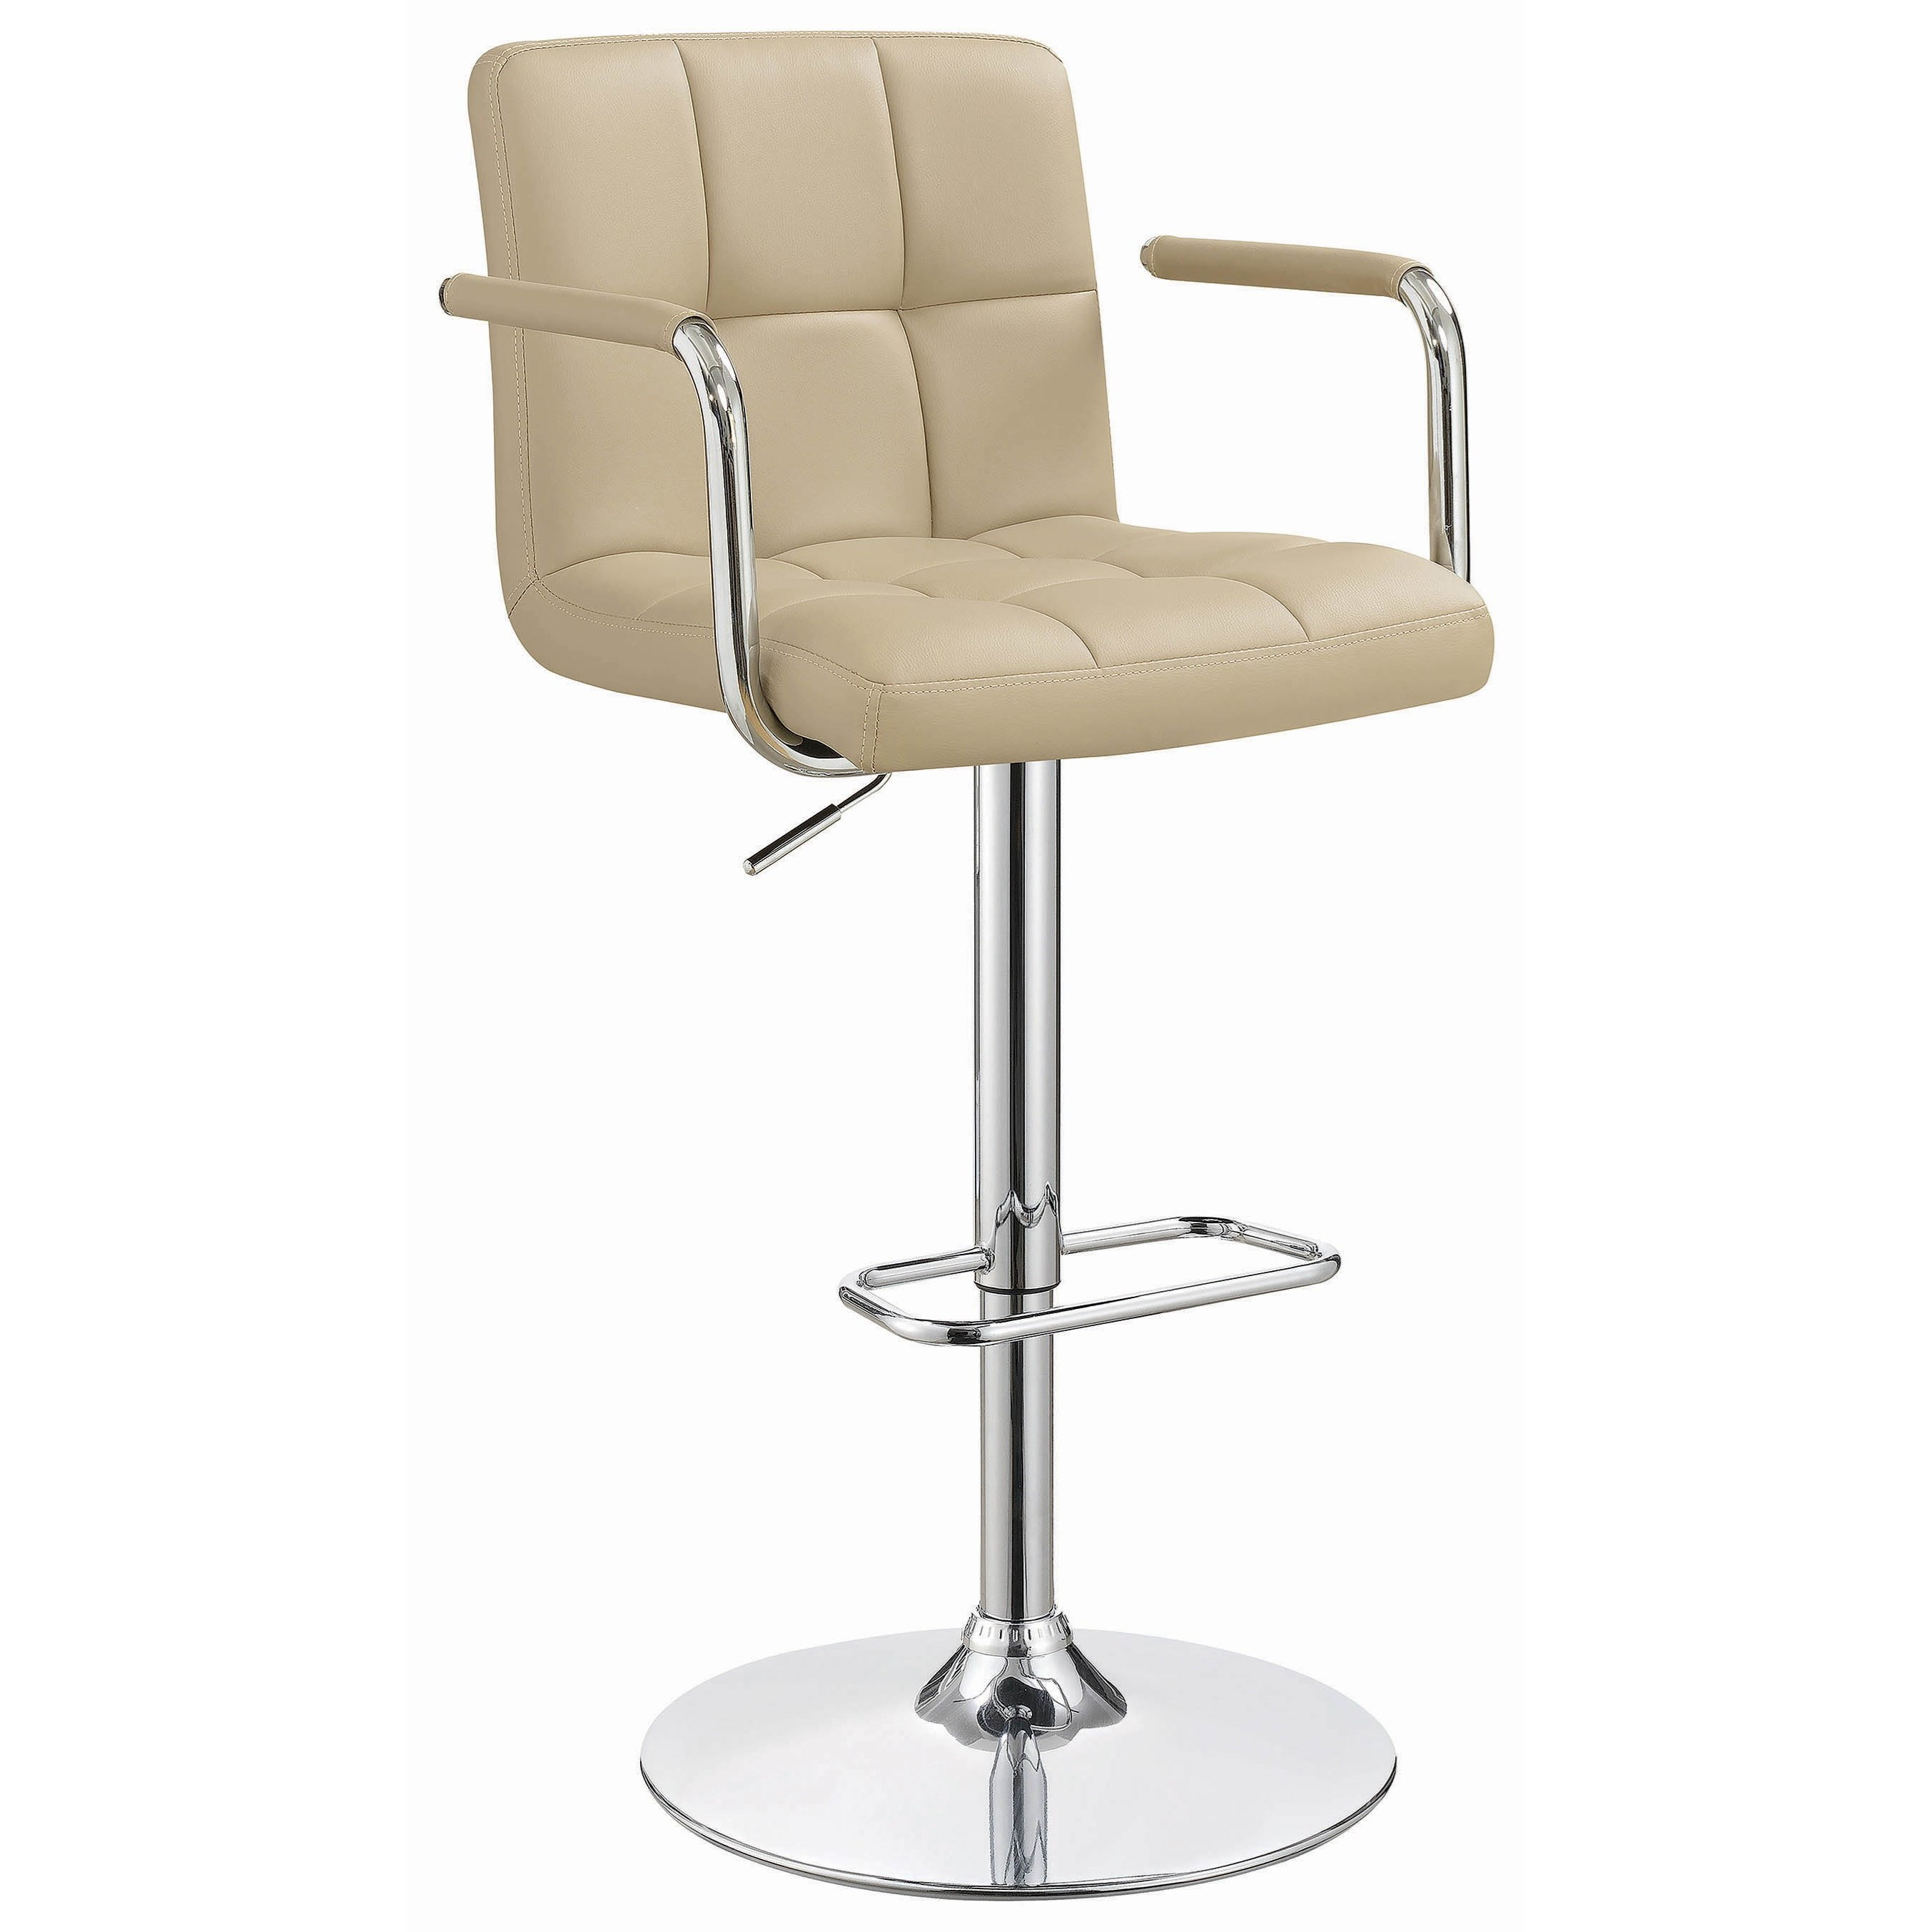 Adjustable Bar Stool - Beige Leatherette